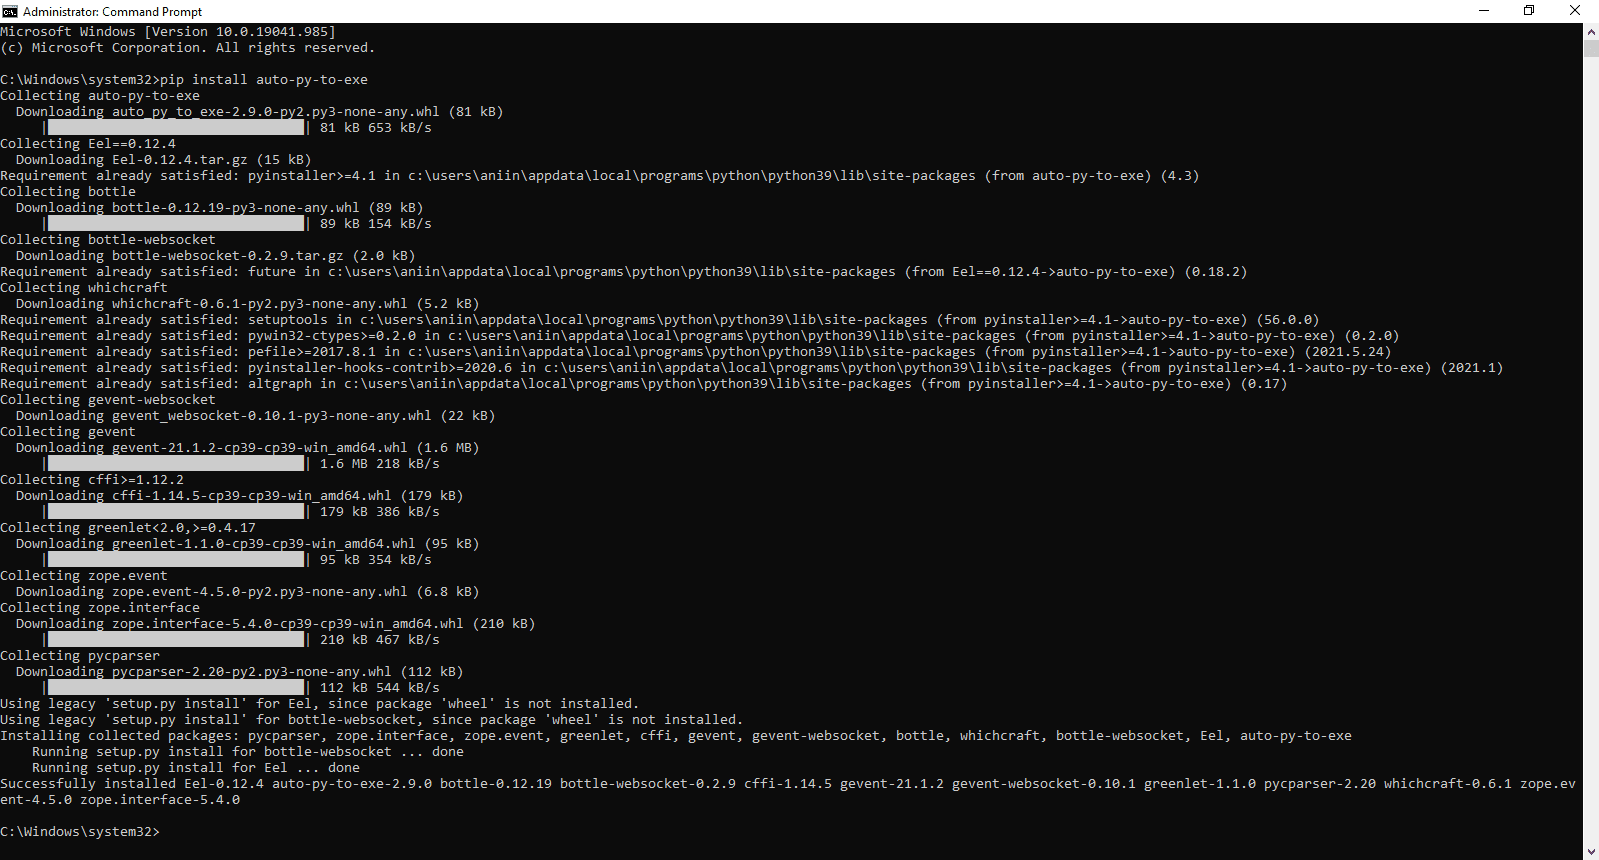 how to install auto-py-to-exe